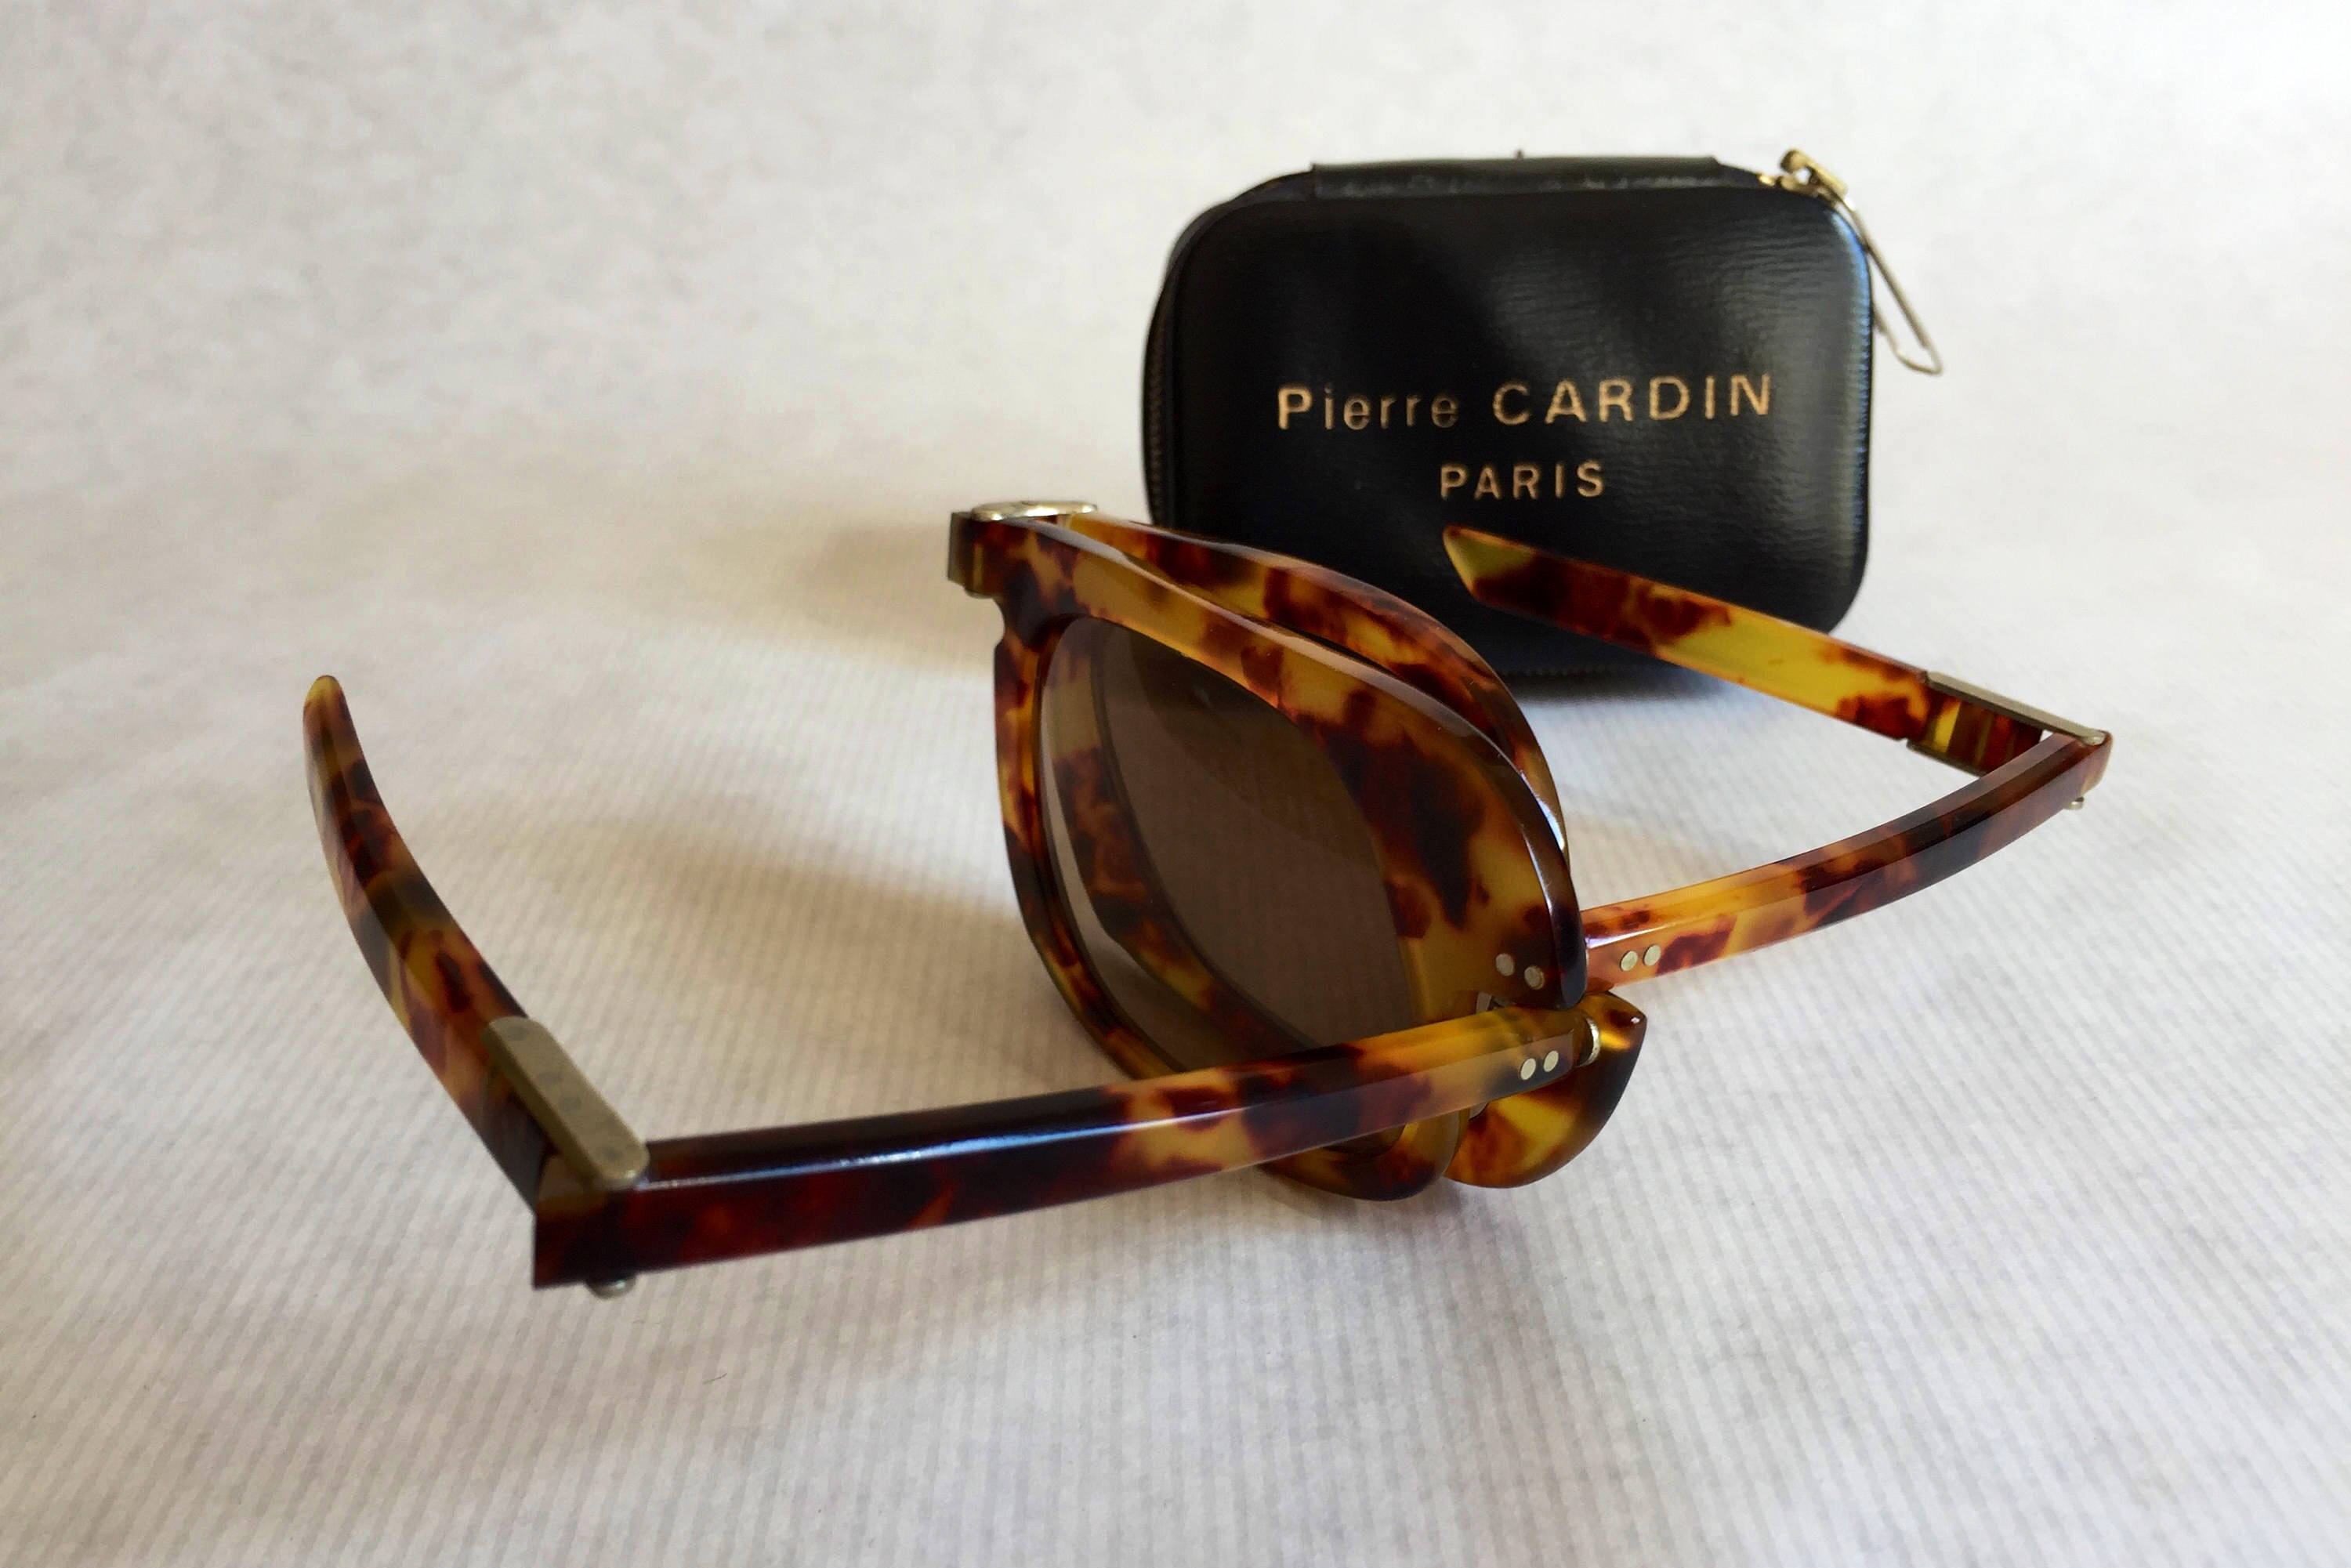 d2272bb1e9 Pierre Cardin Folding Vintage Sunglasses Made in France New Old Stock  including Leather Case